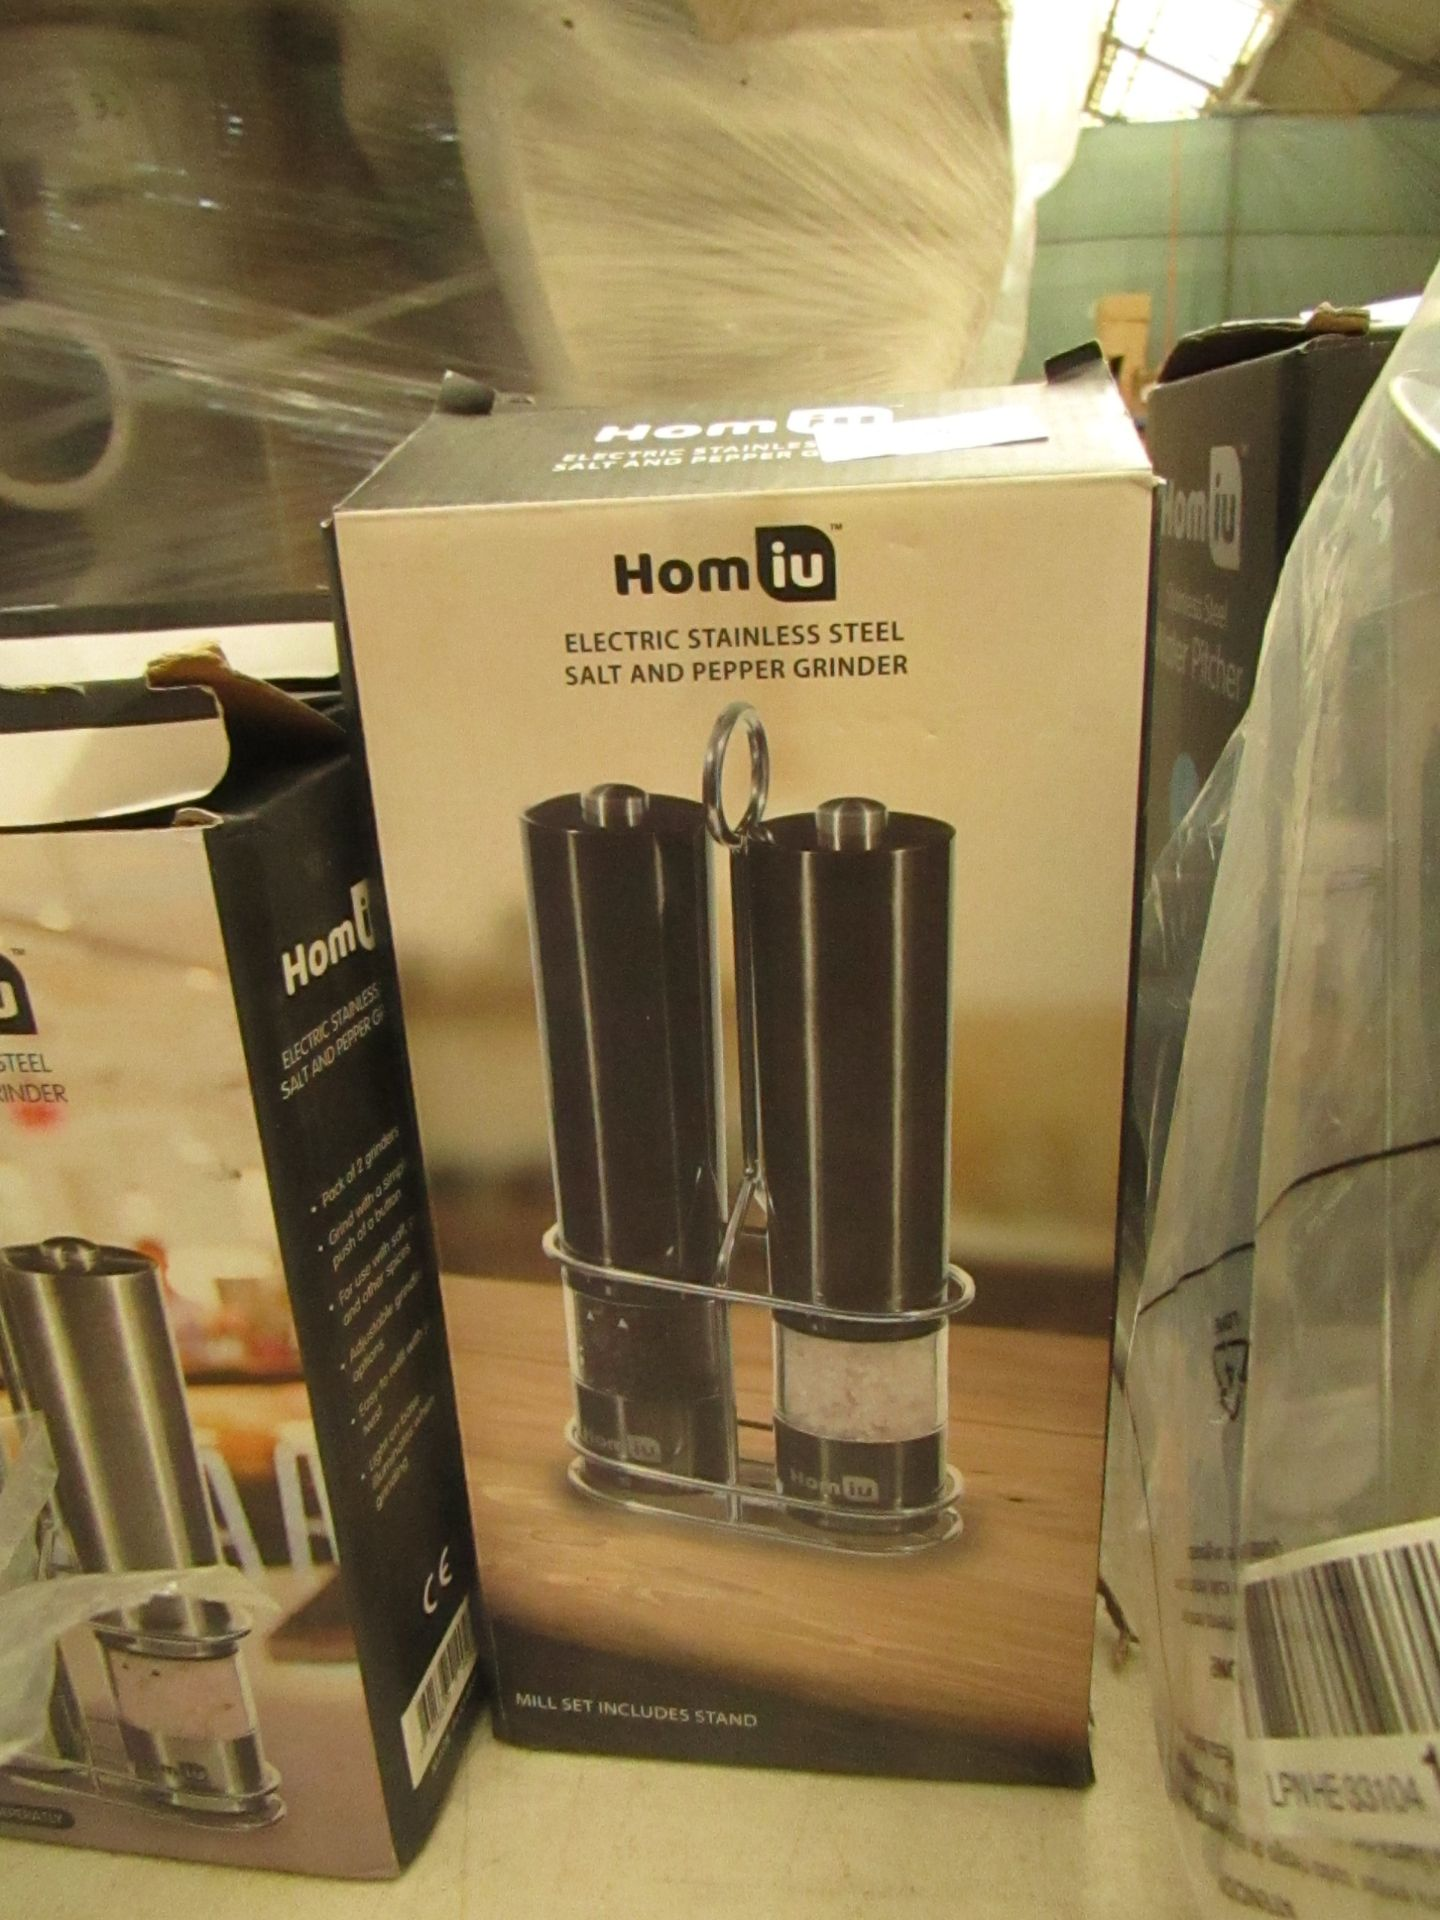 Lotto 25 - Homiu Electric Stainless Steel Salt and Pepper Grinder set in Gunmetal . Boxed